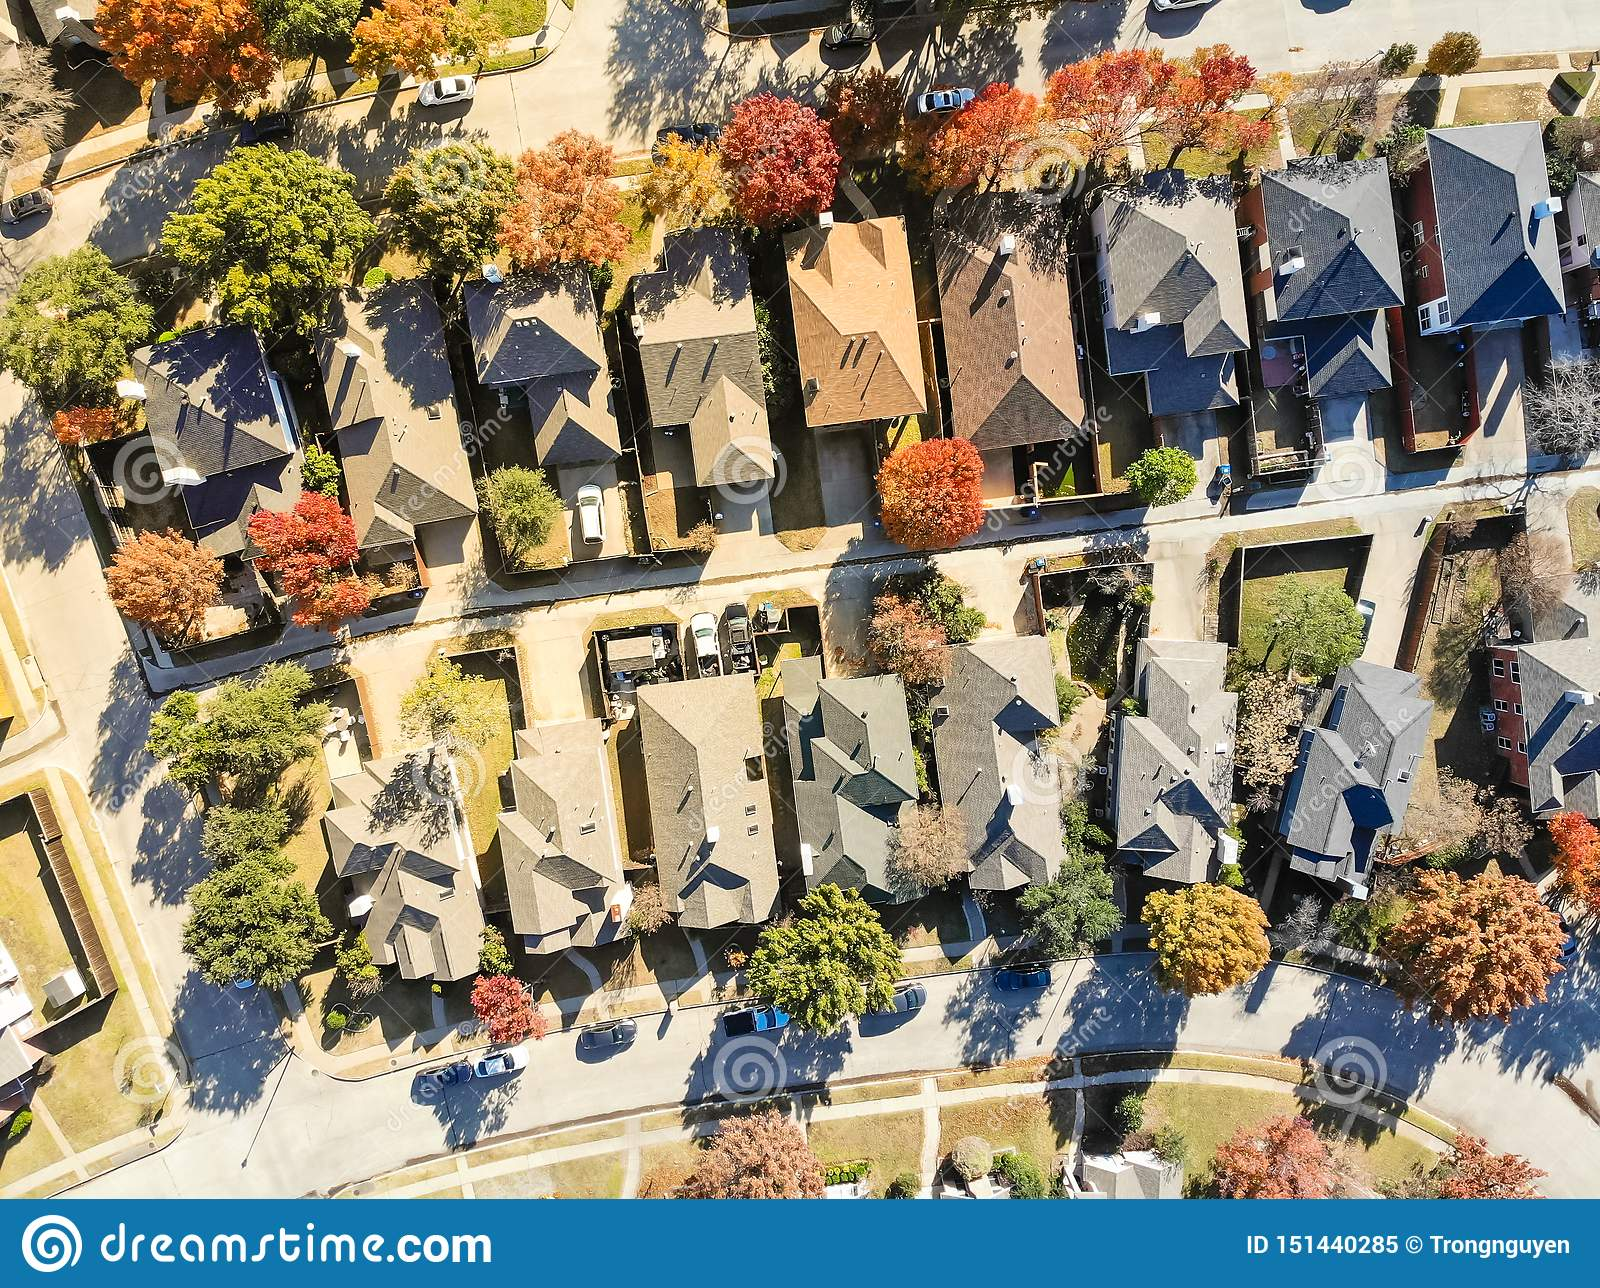 Aerial view of upscale residential area near Dallas in fall season